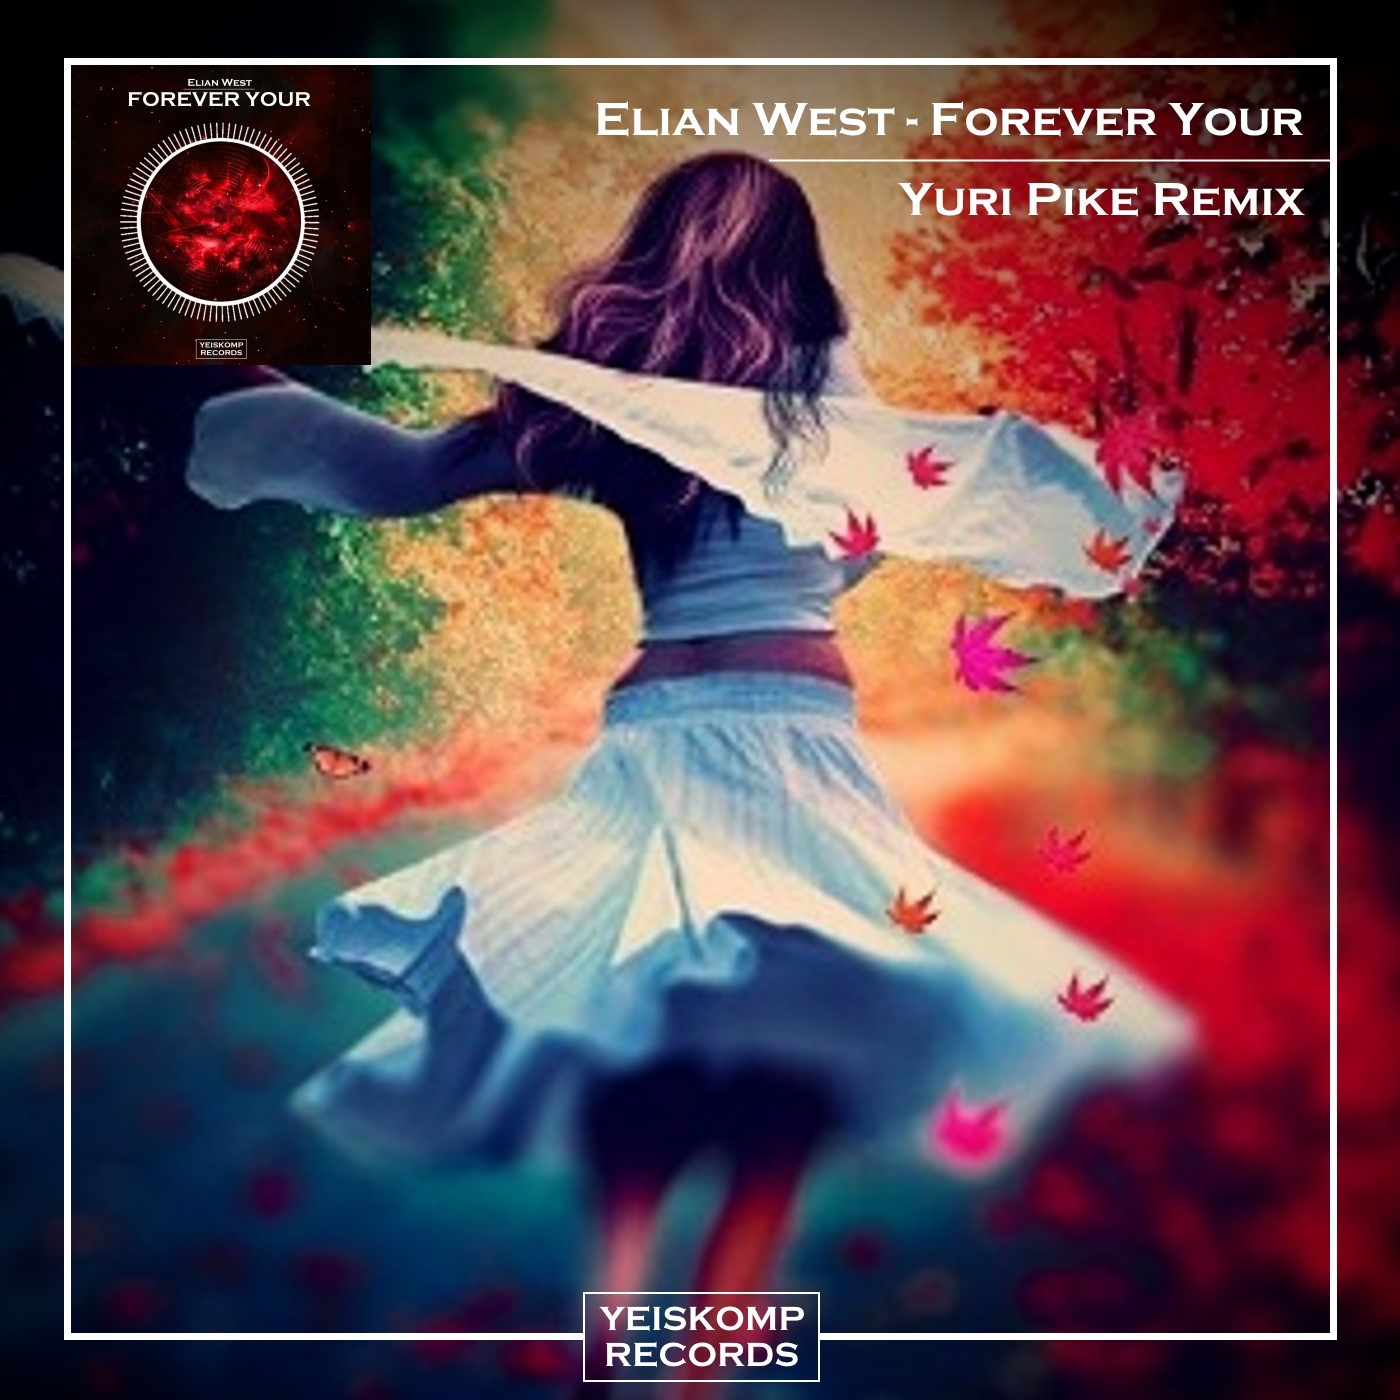 Elian West - Forever Your (Yuri Pike Remix)